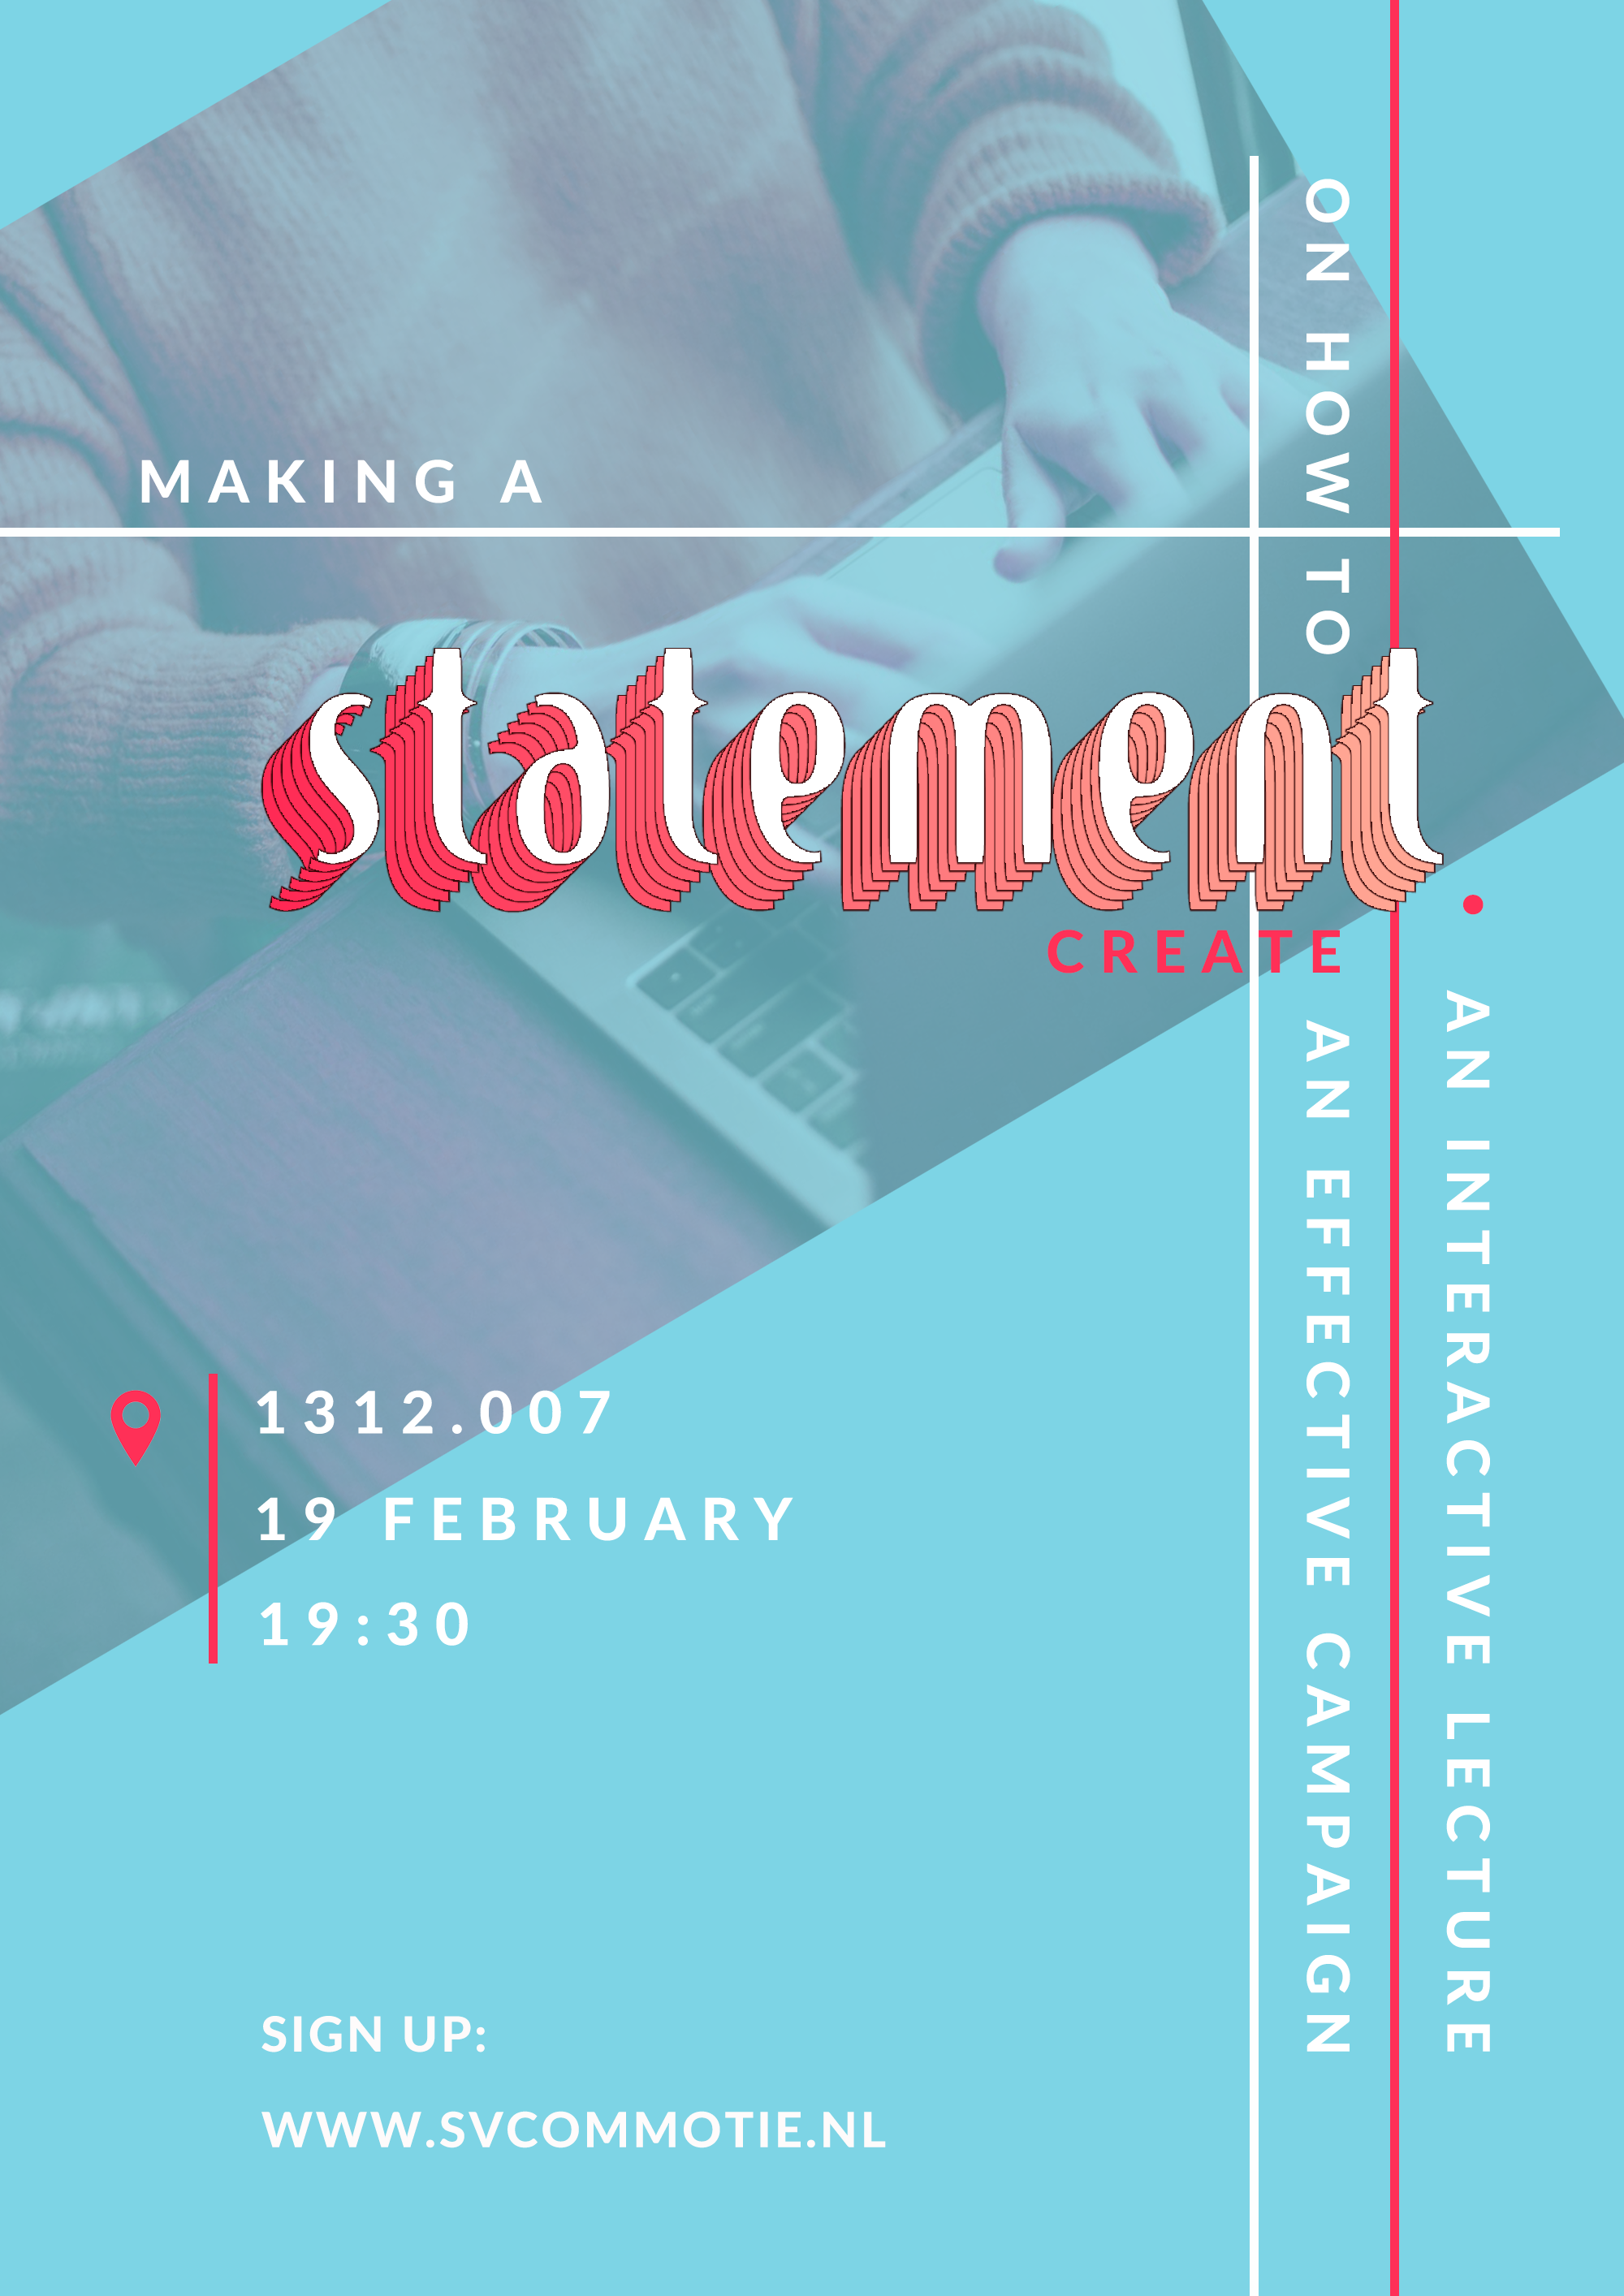 Lecture: Making a Statement